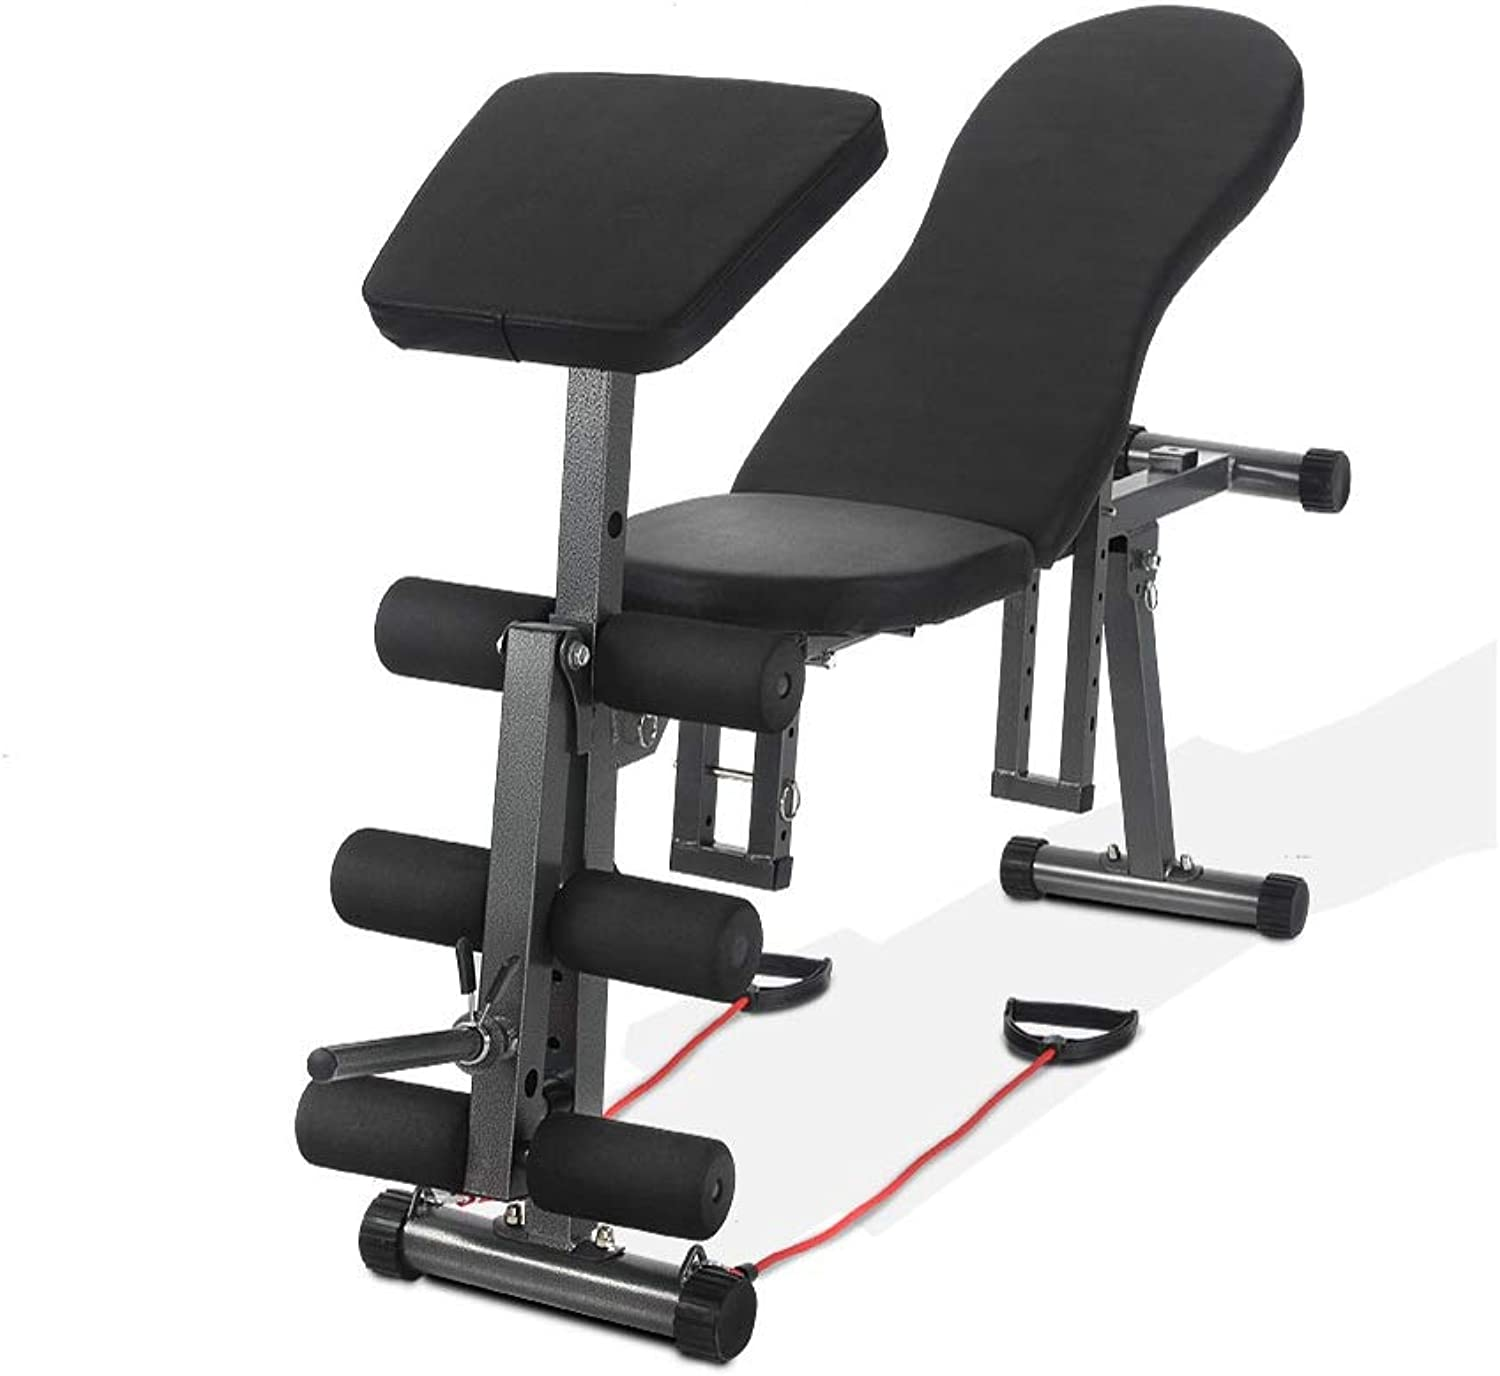 KFXL Strength Training Benches Weight Bench  Black Home Fitness Equipment for Bench Press Folding Chair Bench Press